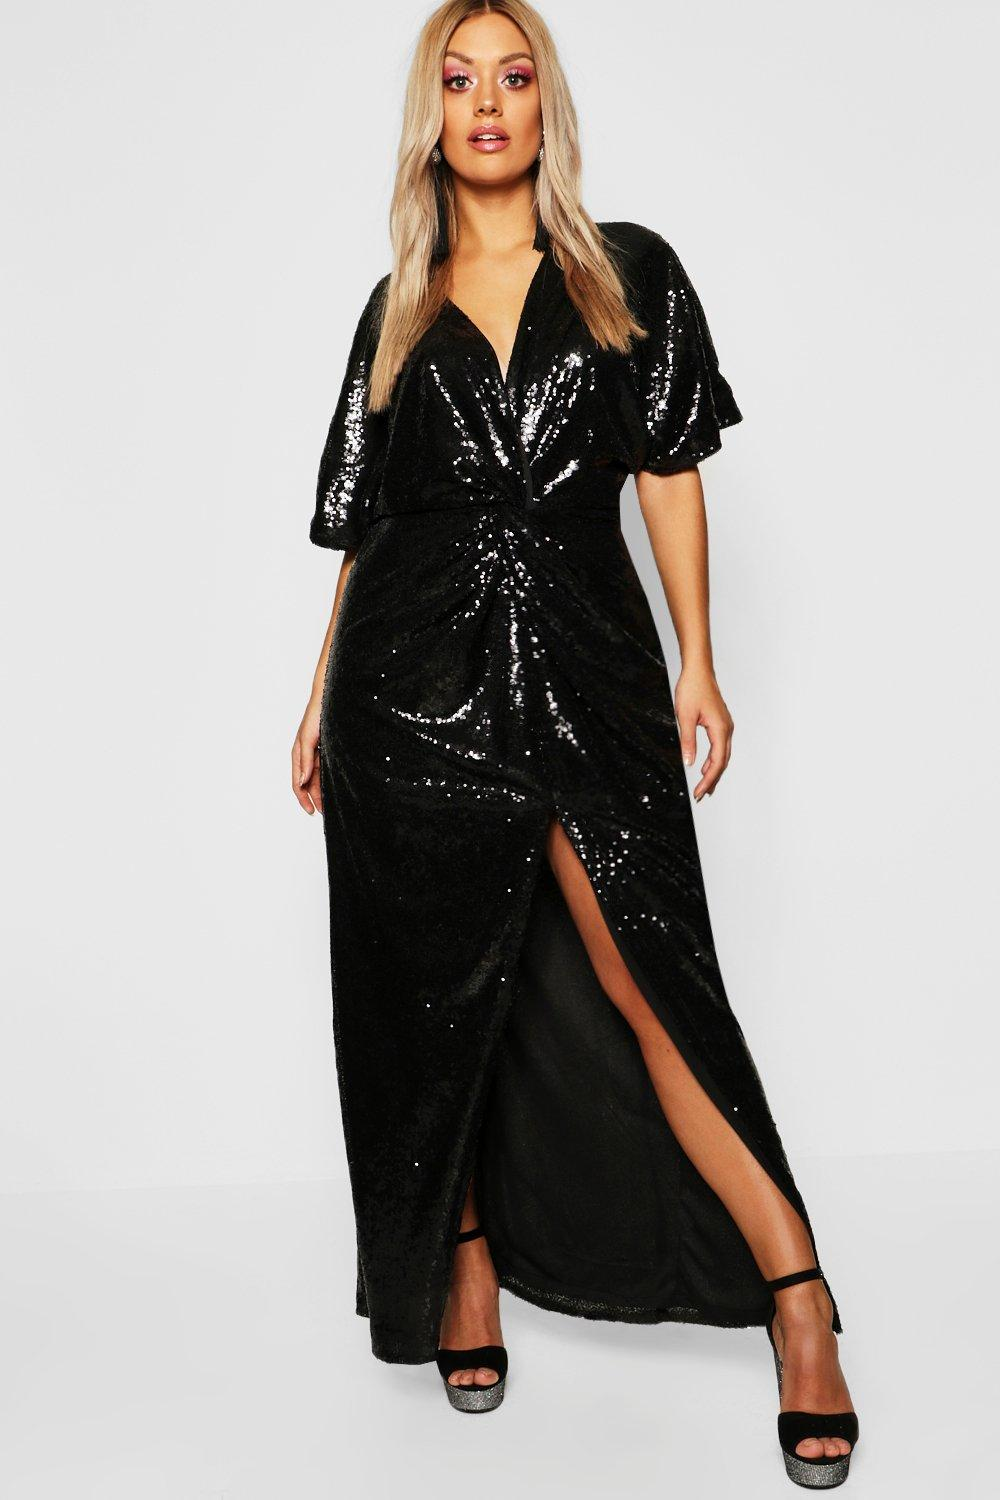 order new design info for Gemma Collins Kimono Twist Sequin Maxi Dress | Boohoo